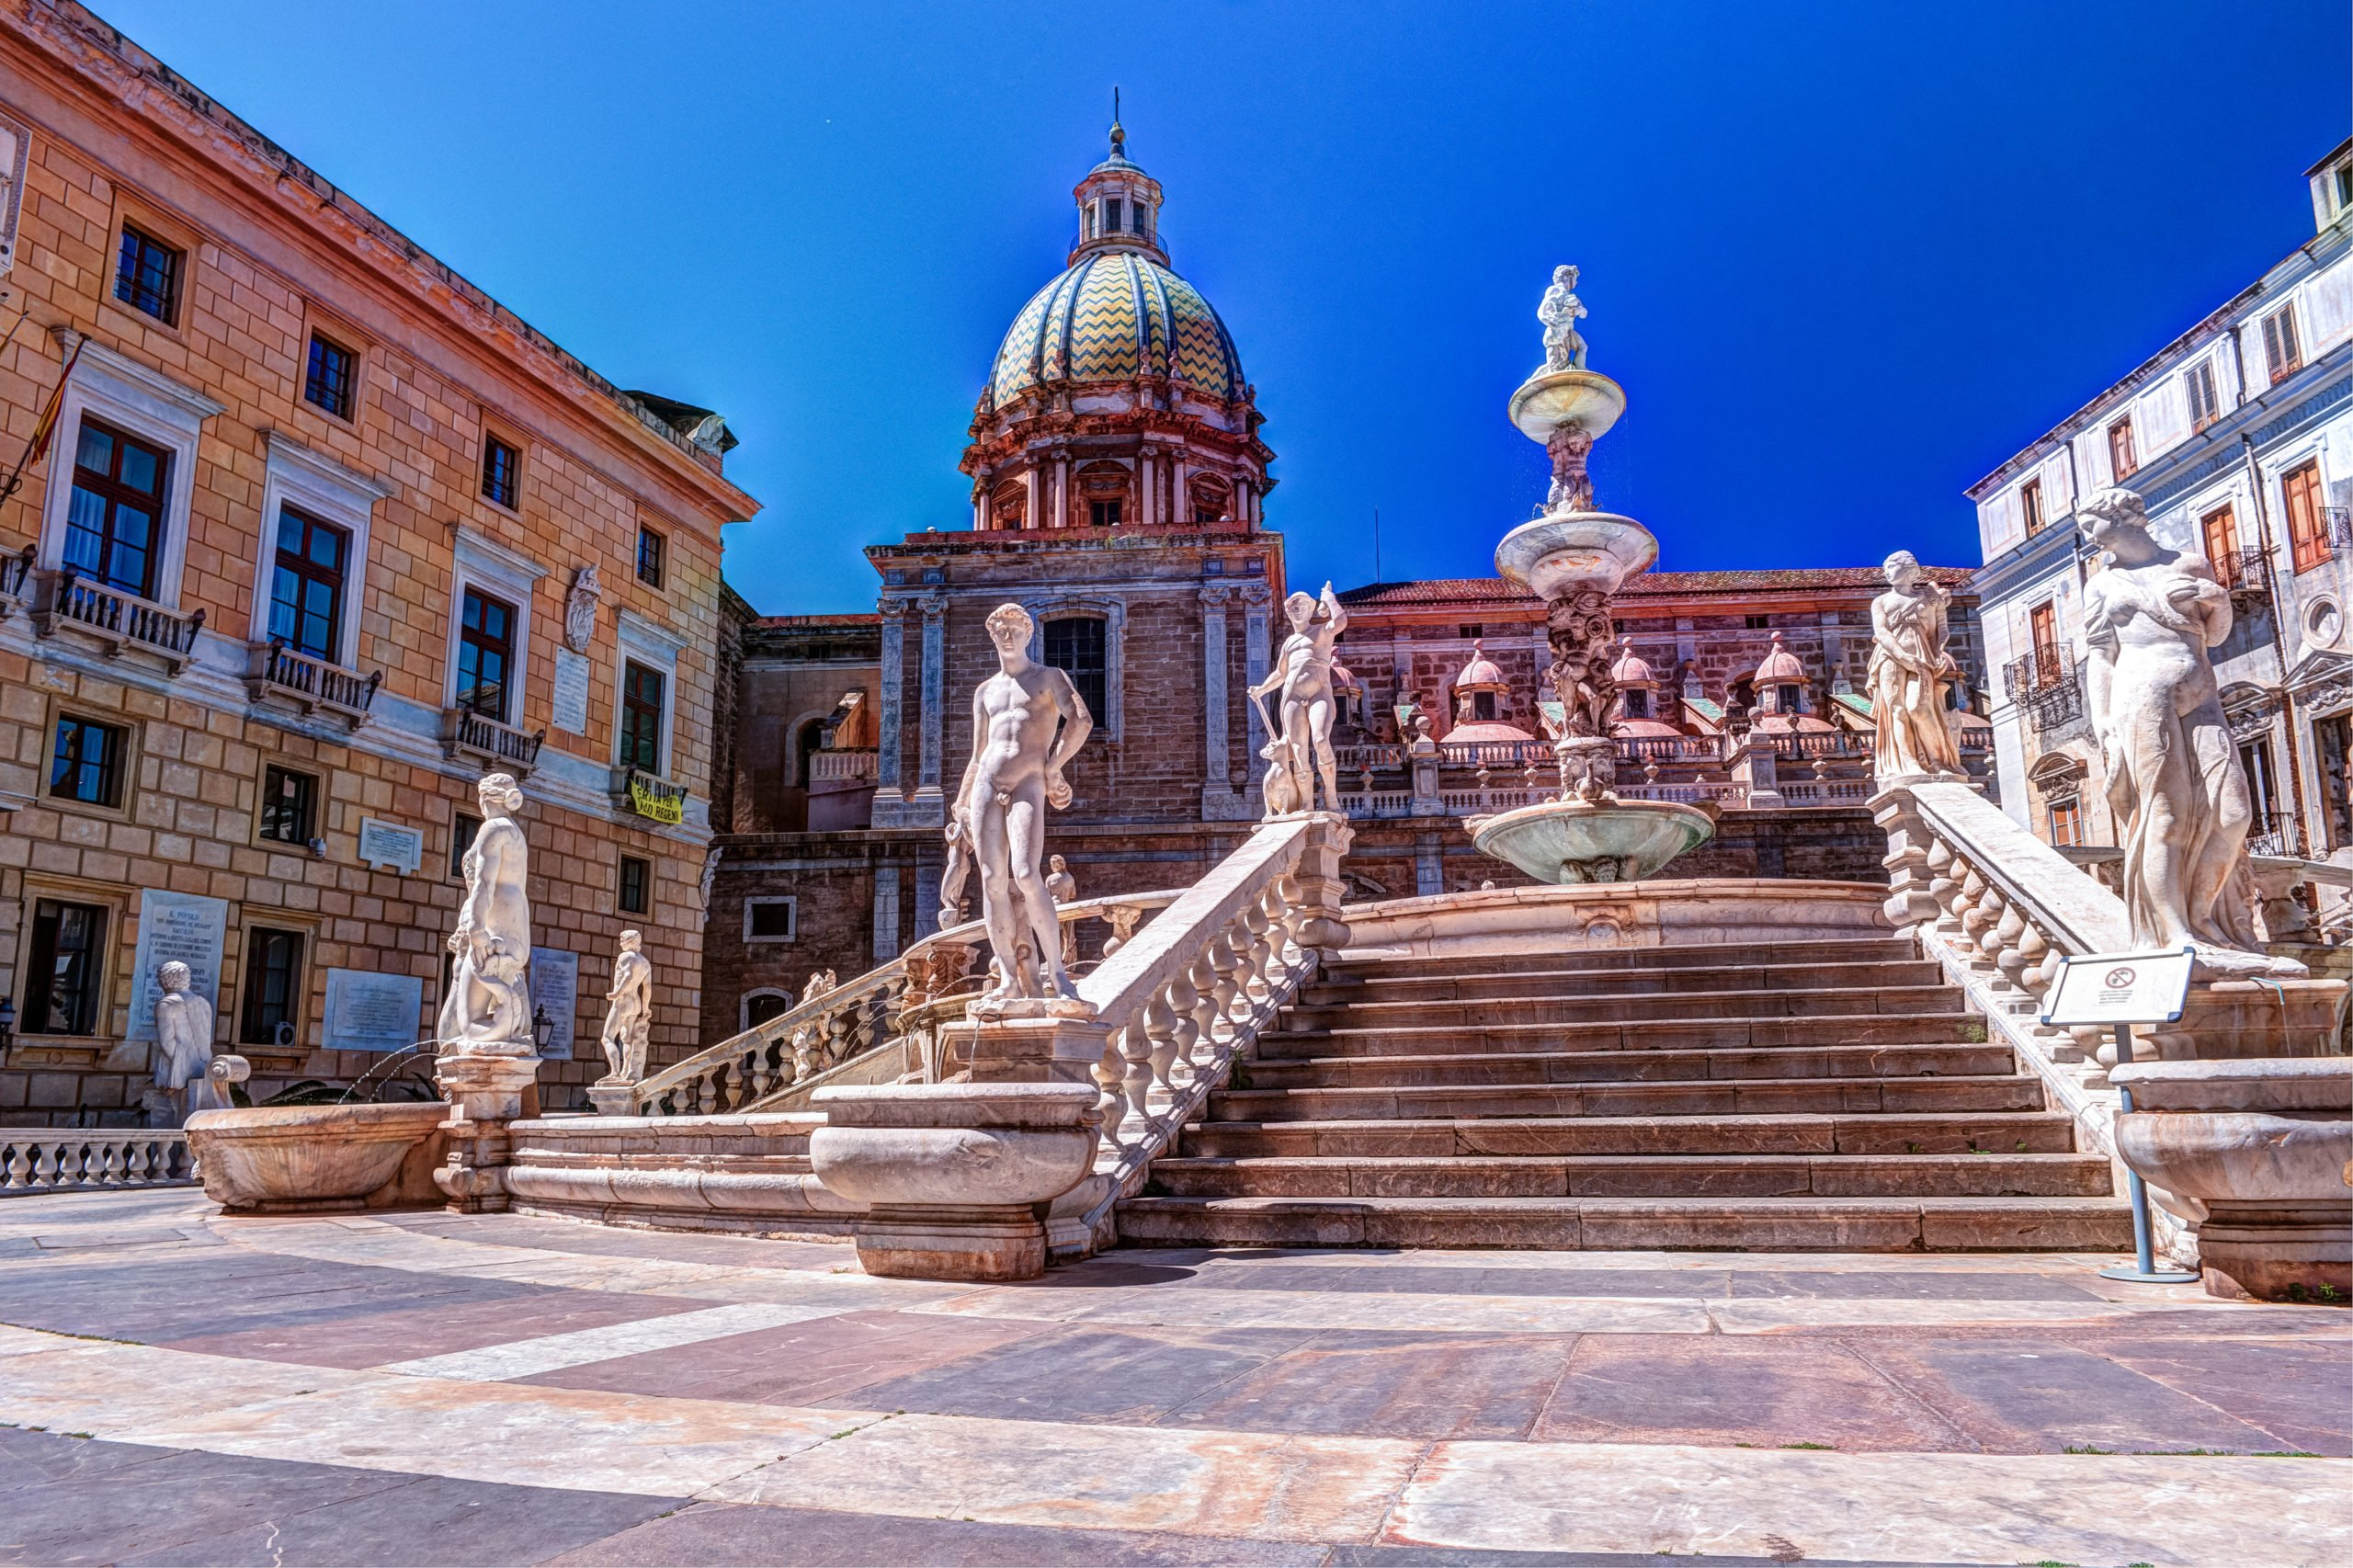 Discover The City Of Palermo On The 8 Days Highlights Of Sicily Tour Package